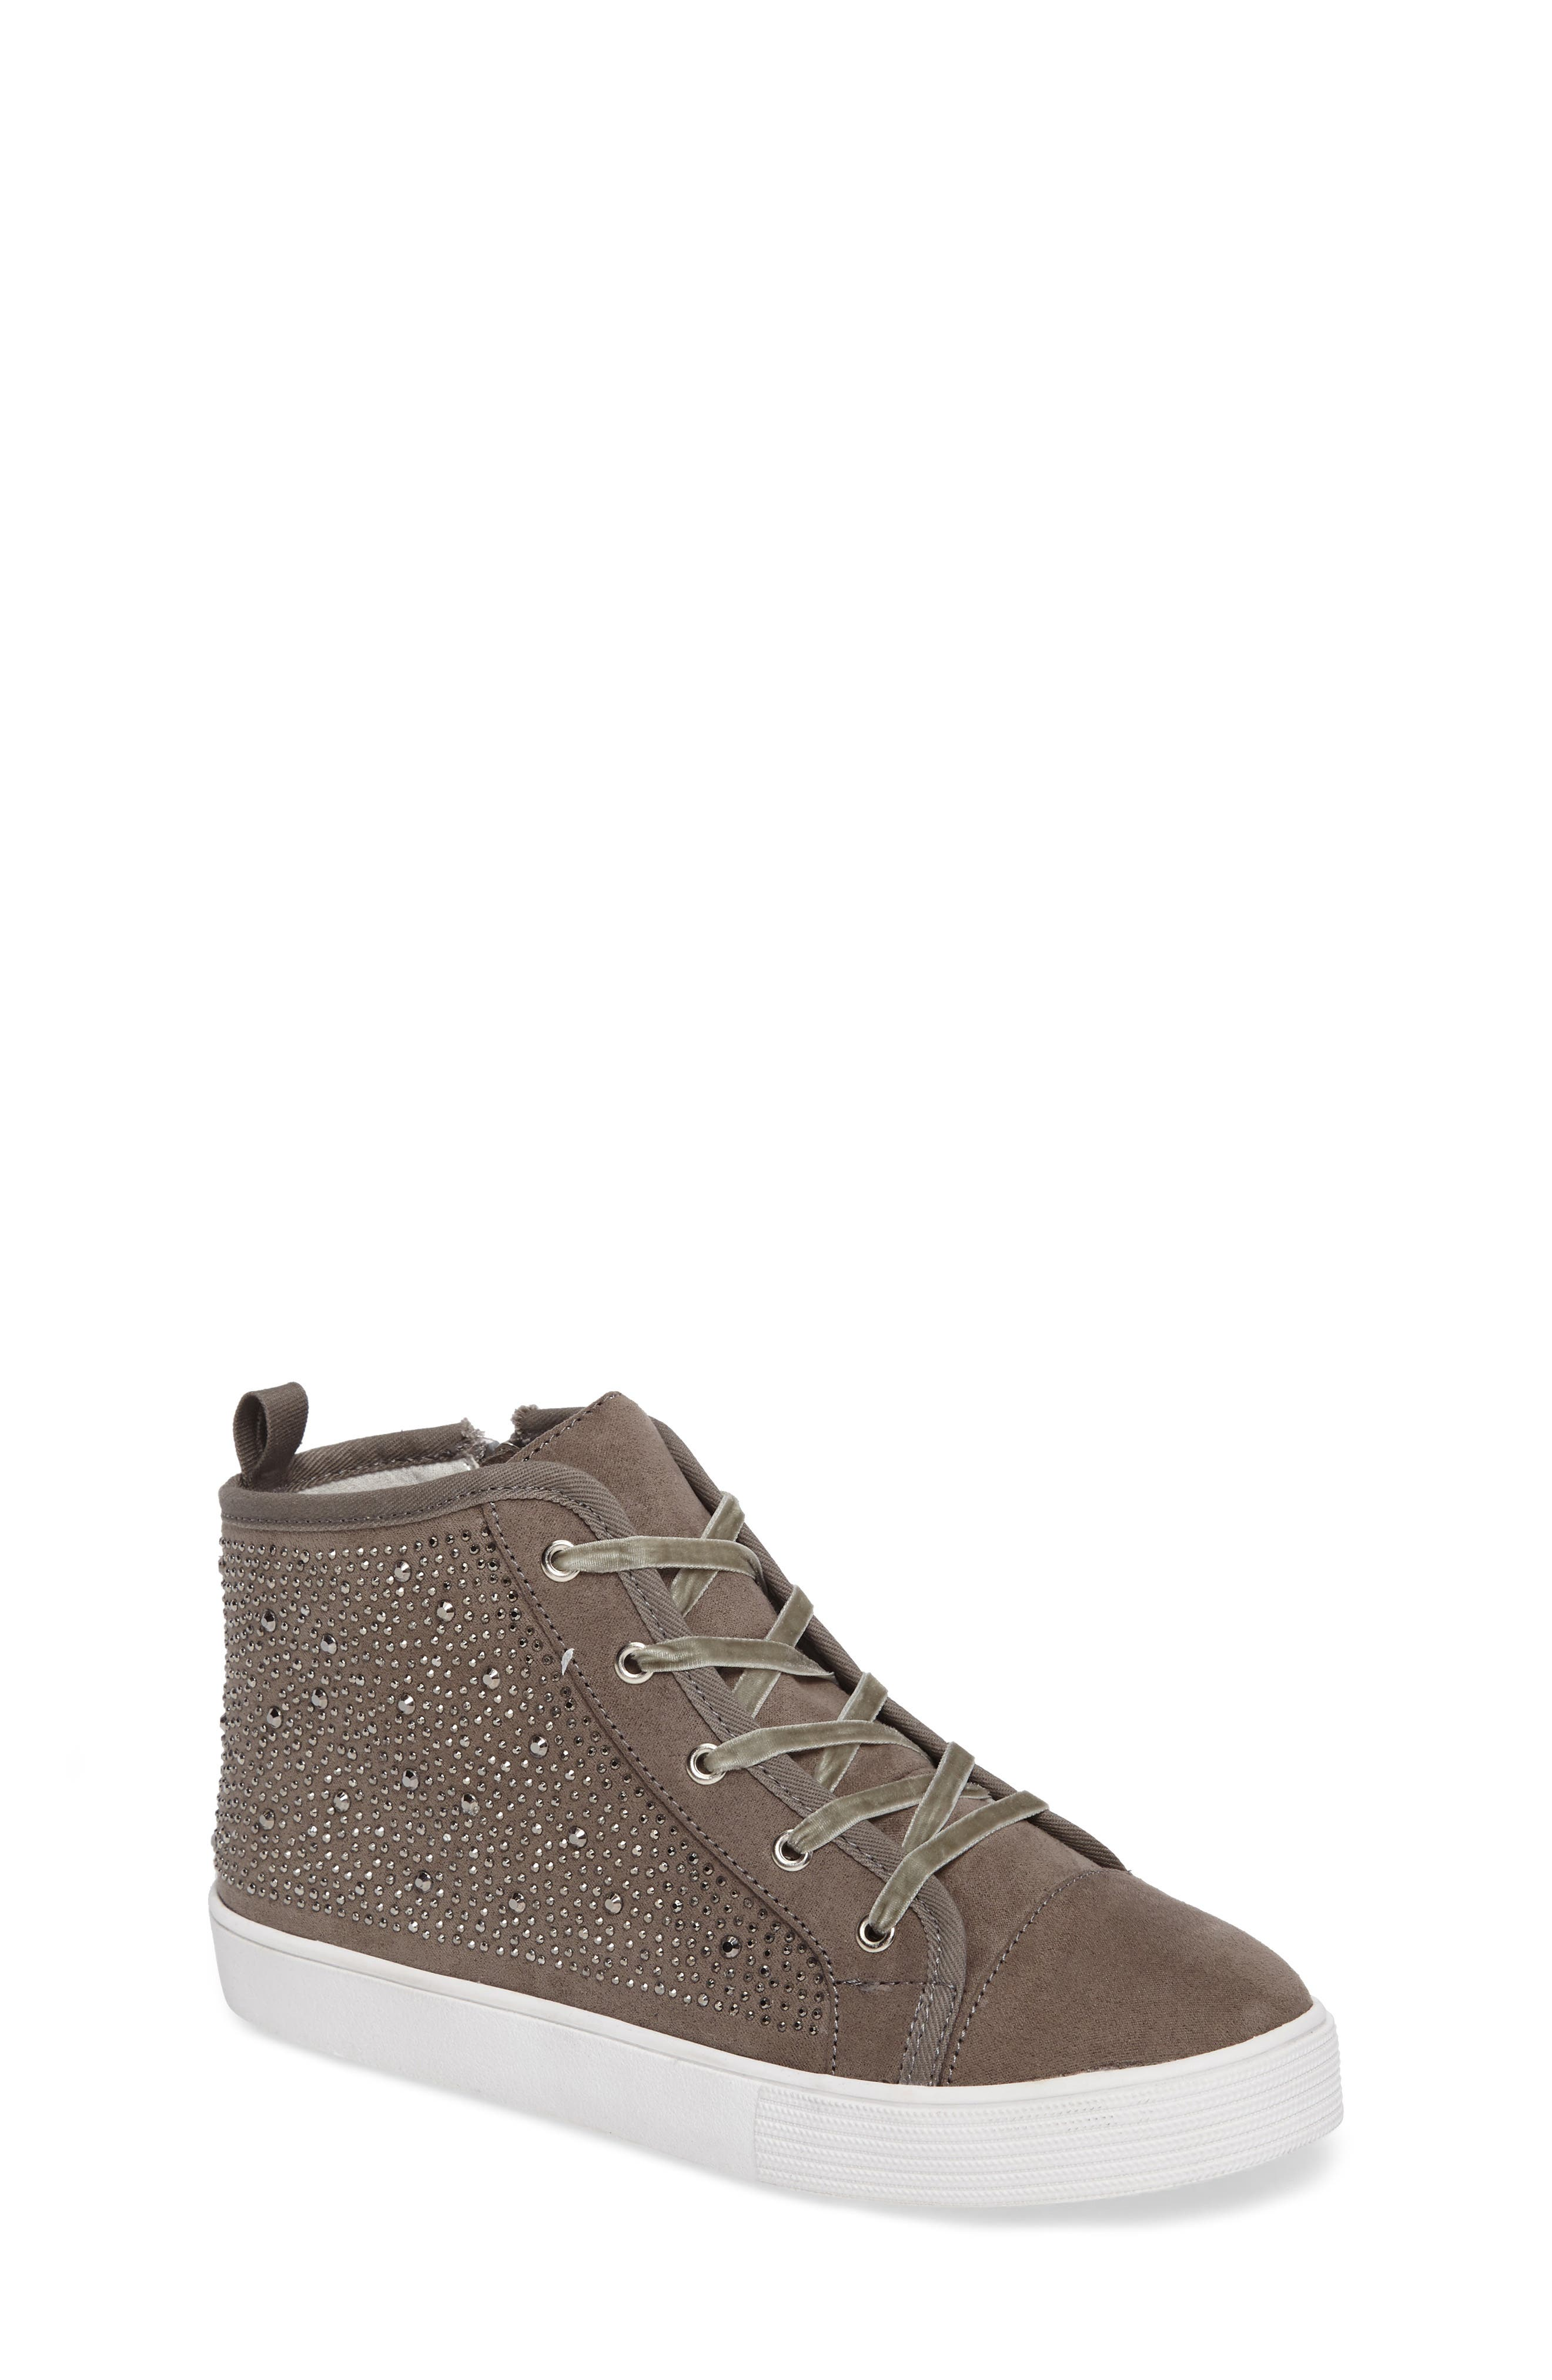 Vance Embellished High Top Sneaker,                             Main thumbnail 1, color,                             040